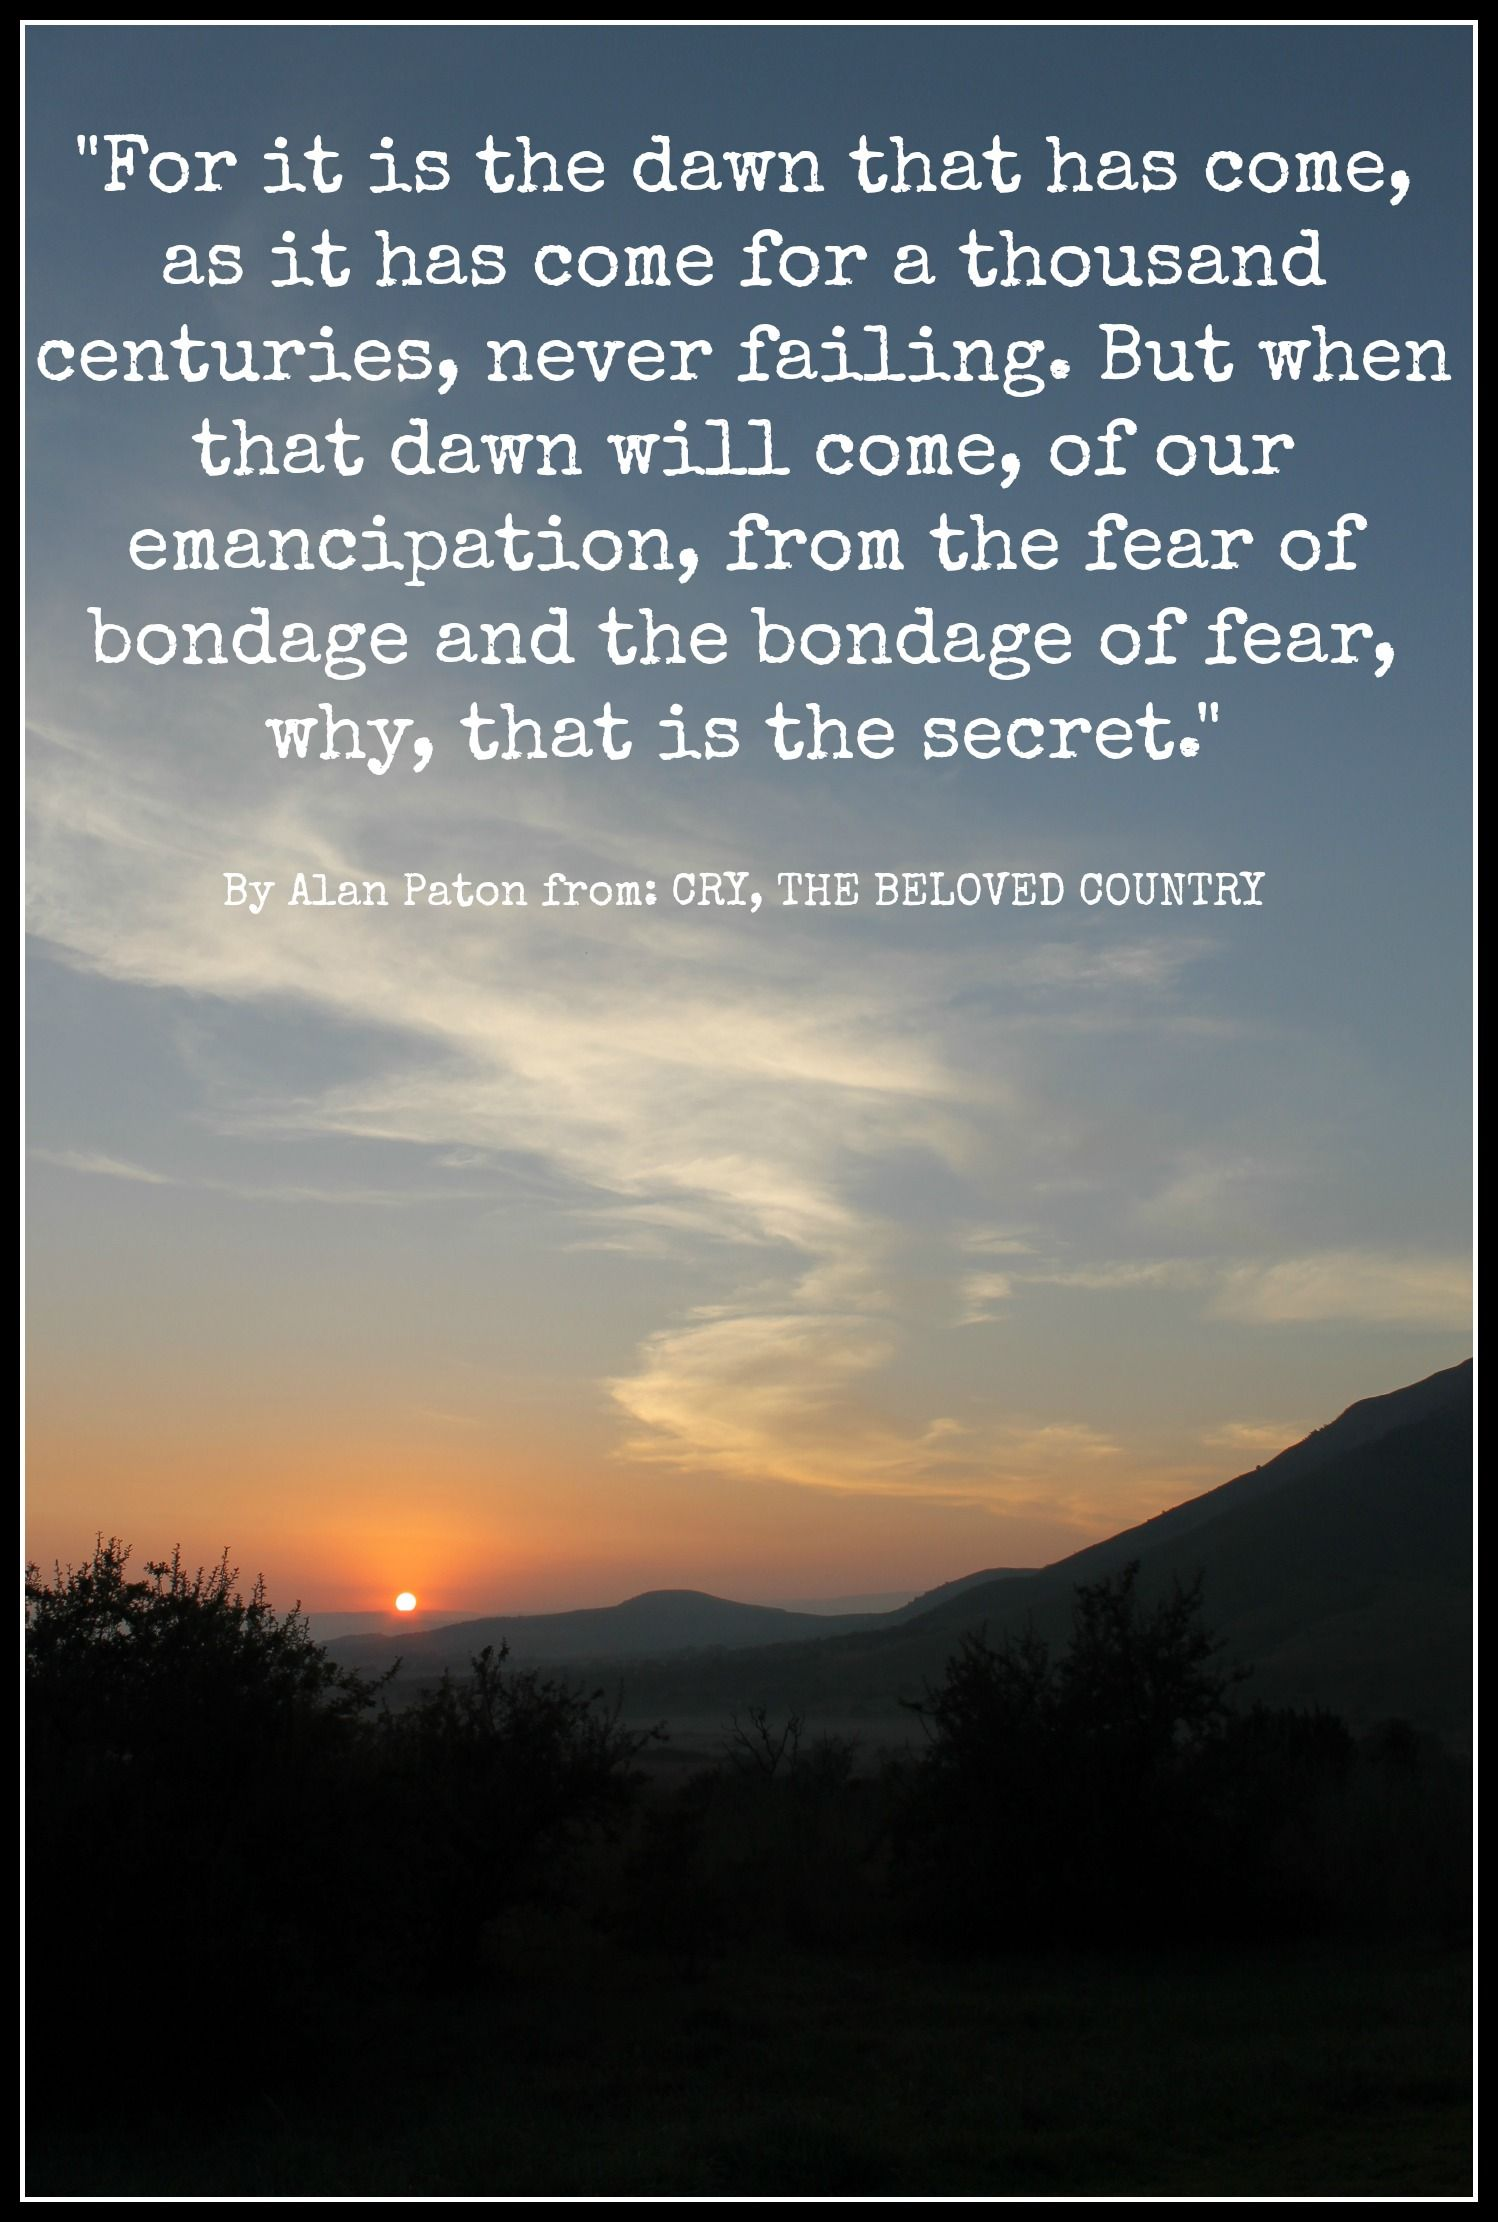 009 A quote by Alan Paton from CRY, THE BELOVED COUNTRY. Image